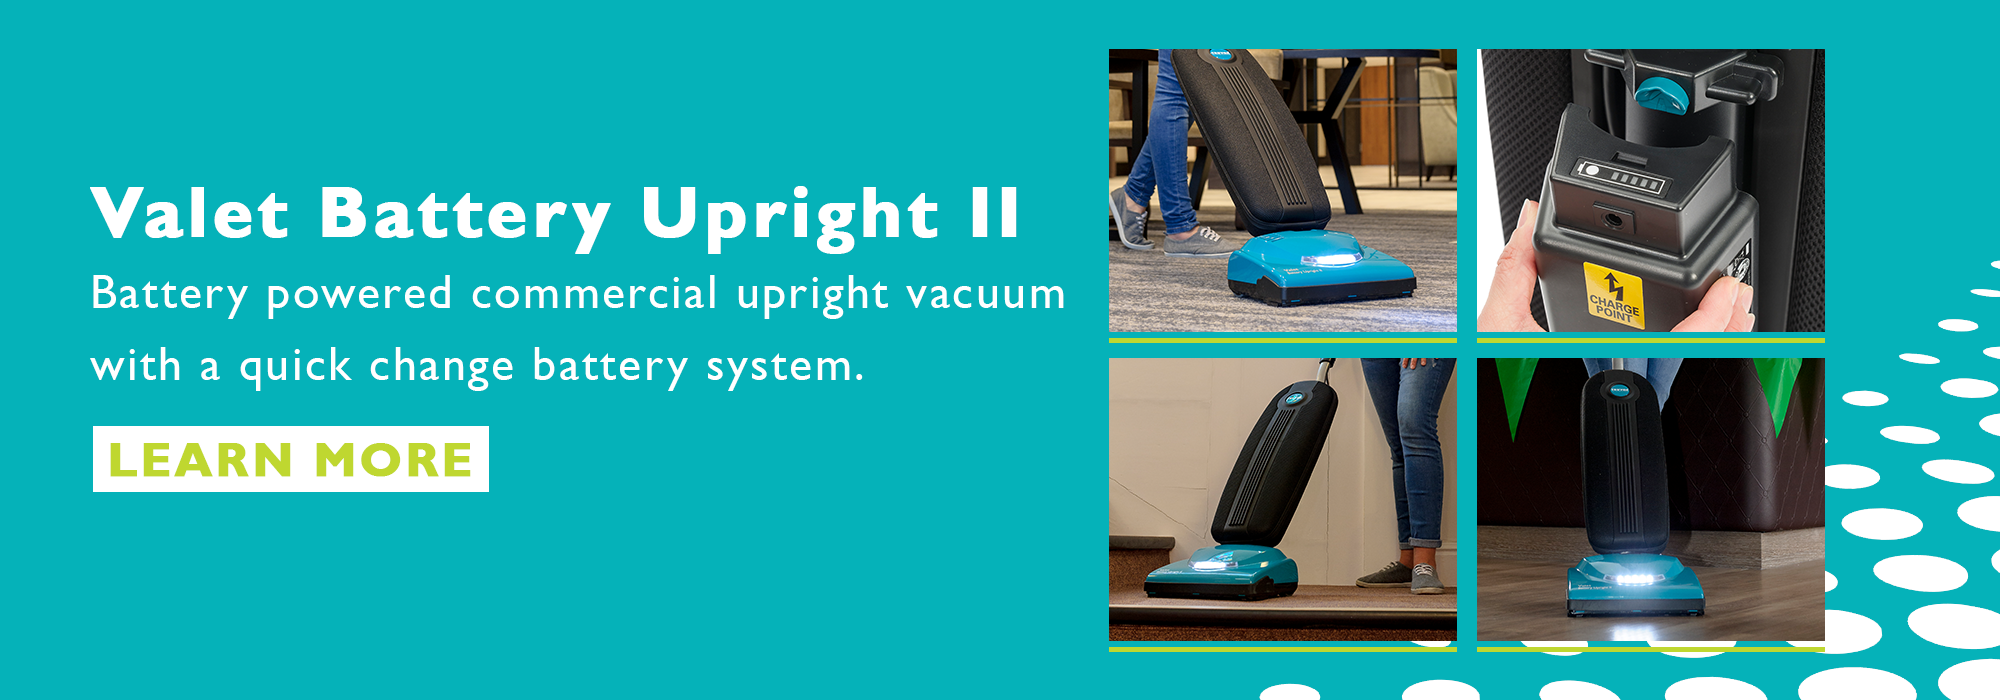 VBUII battery upright vacuum